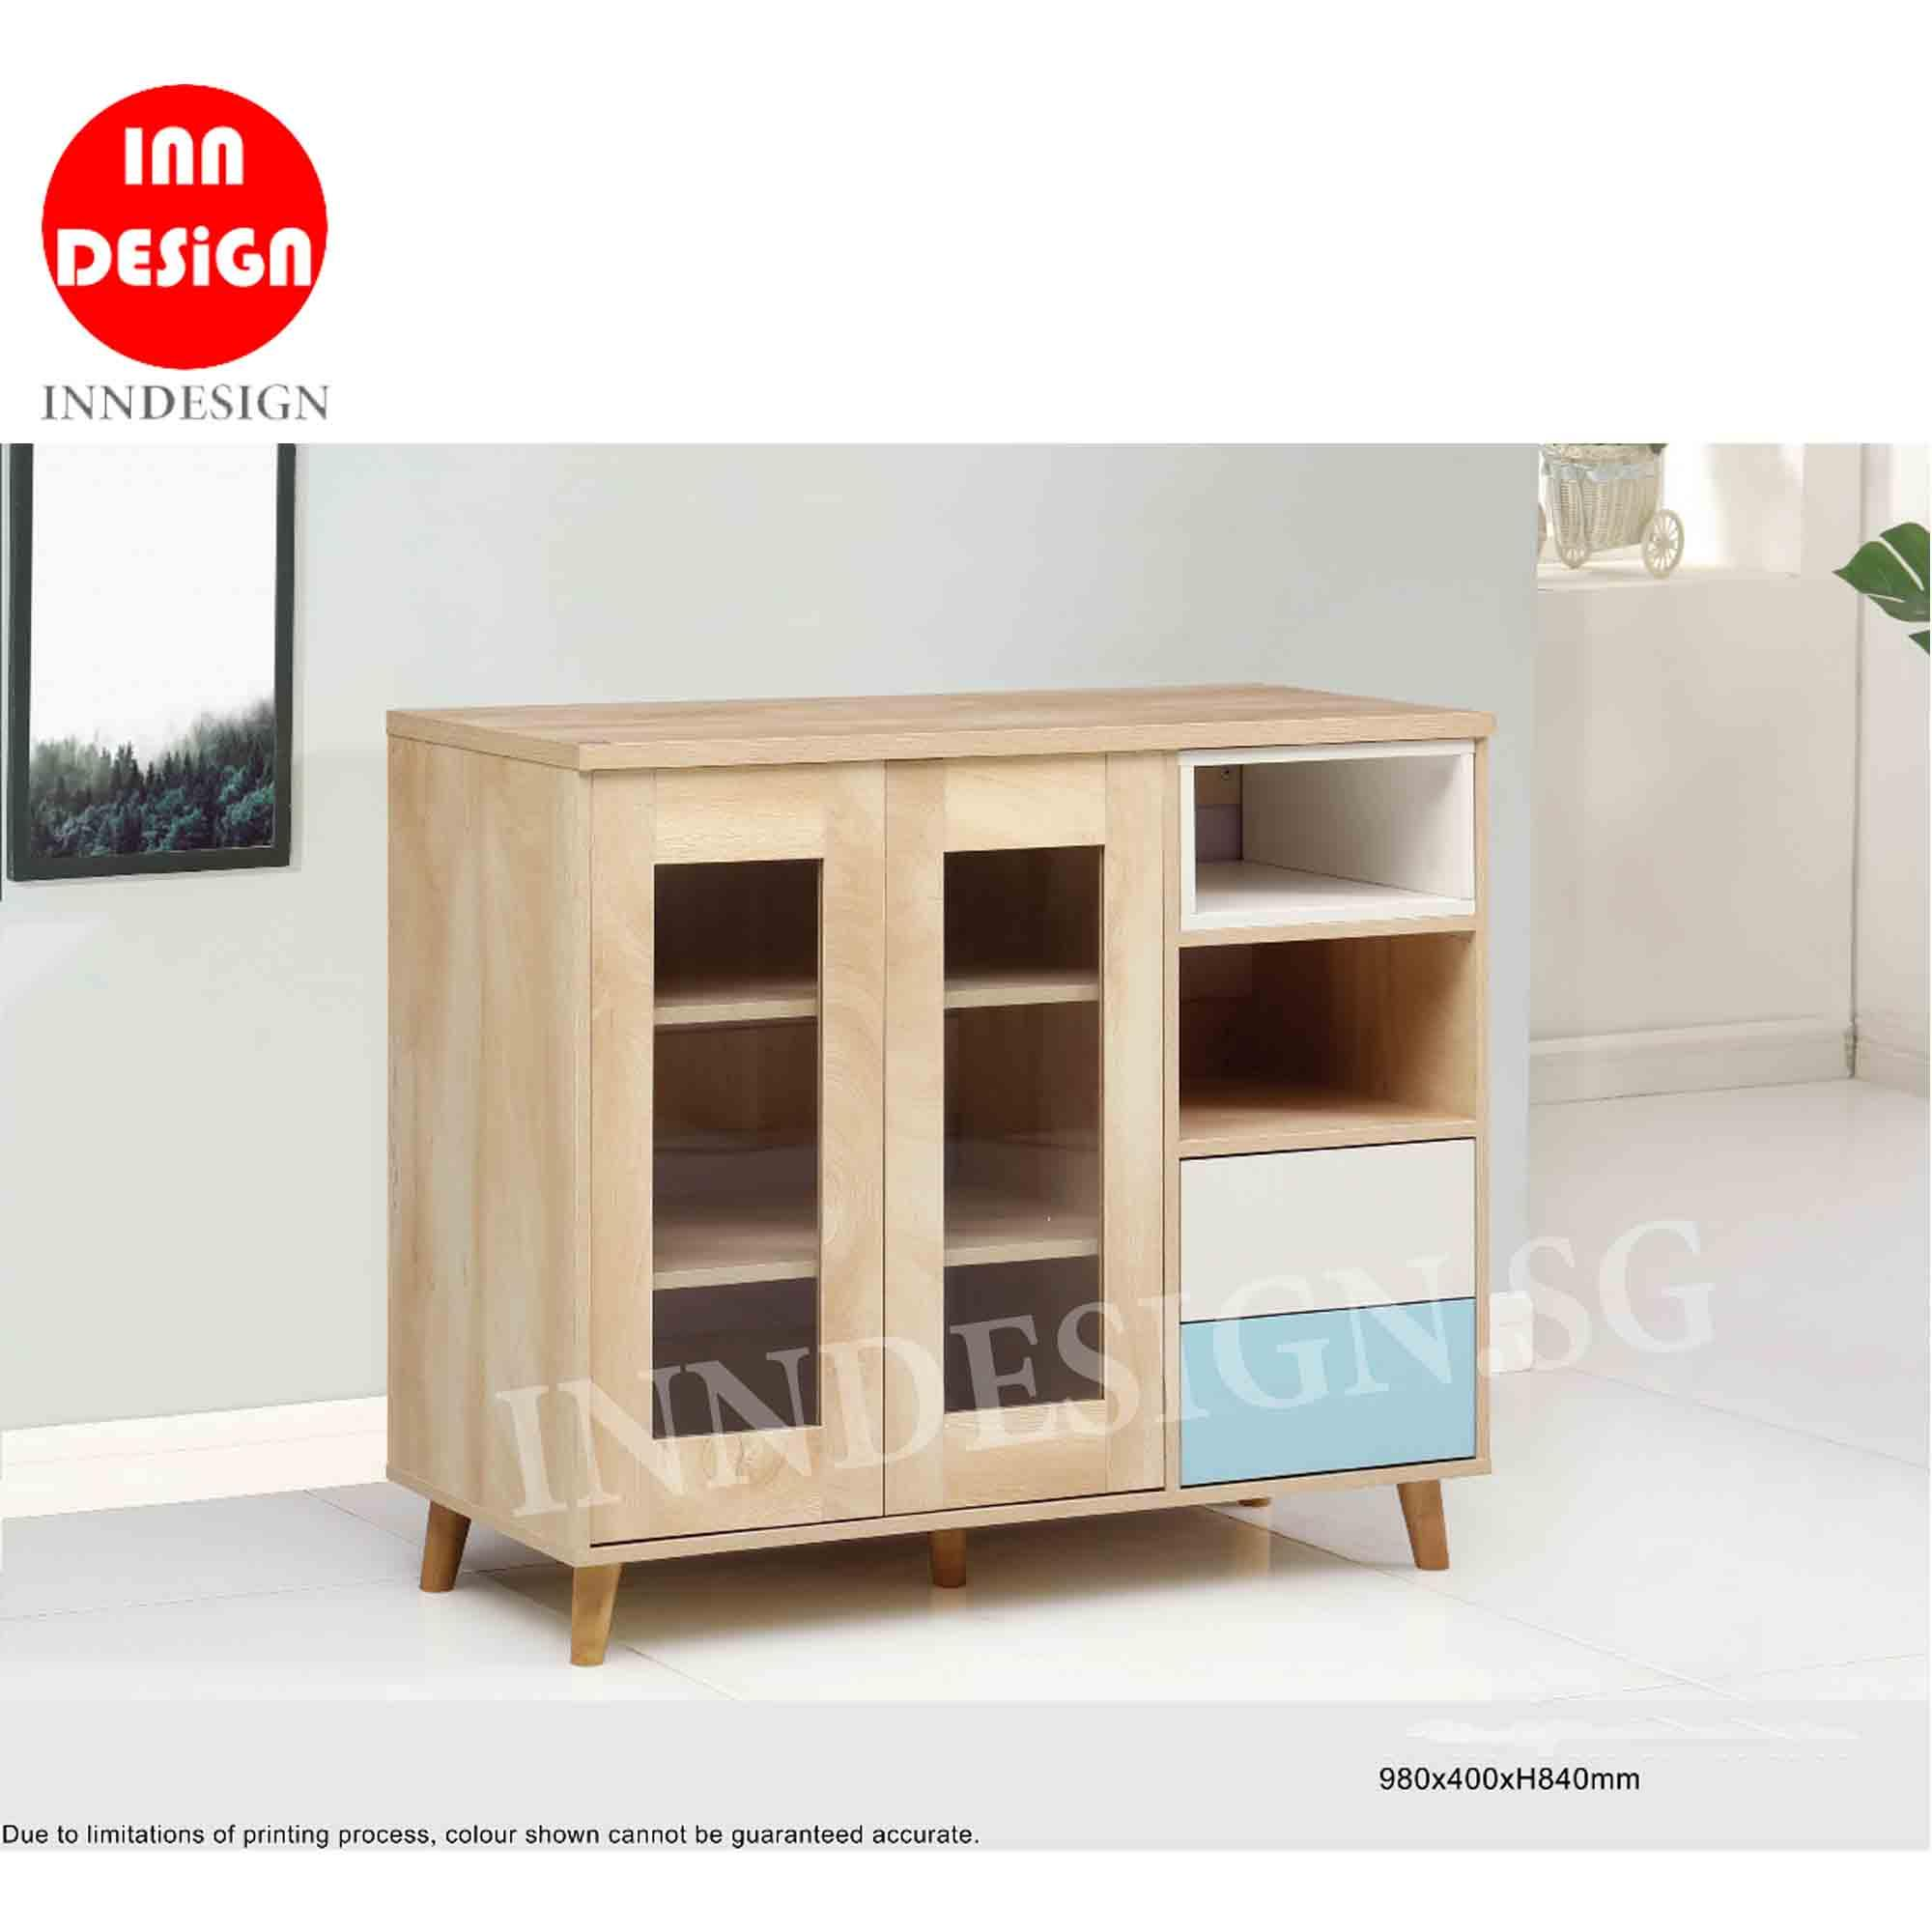 Vella III Storage Cabinet / Chest of Drawer / SIdeboard (Fully Assembled and Free Delivery)